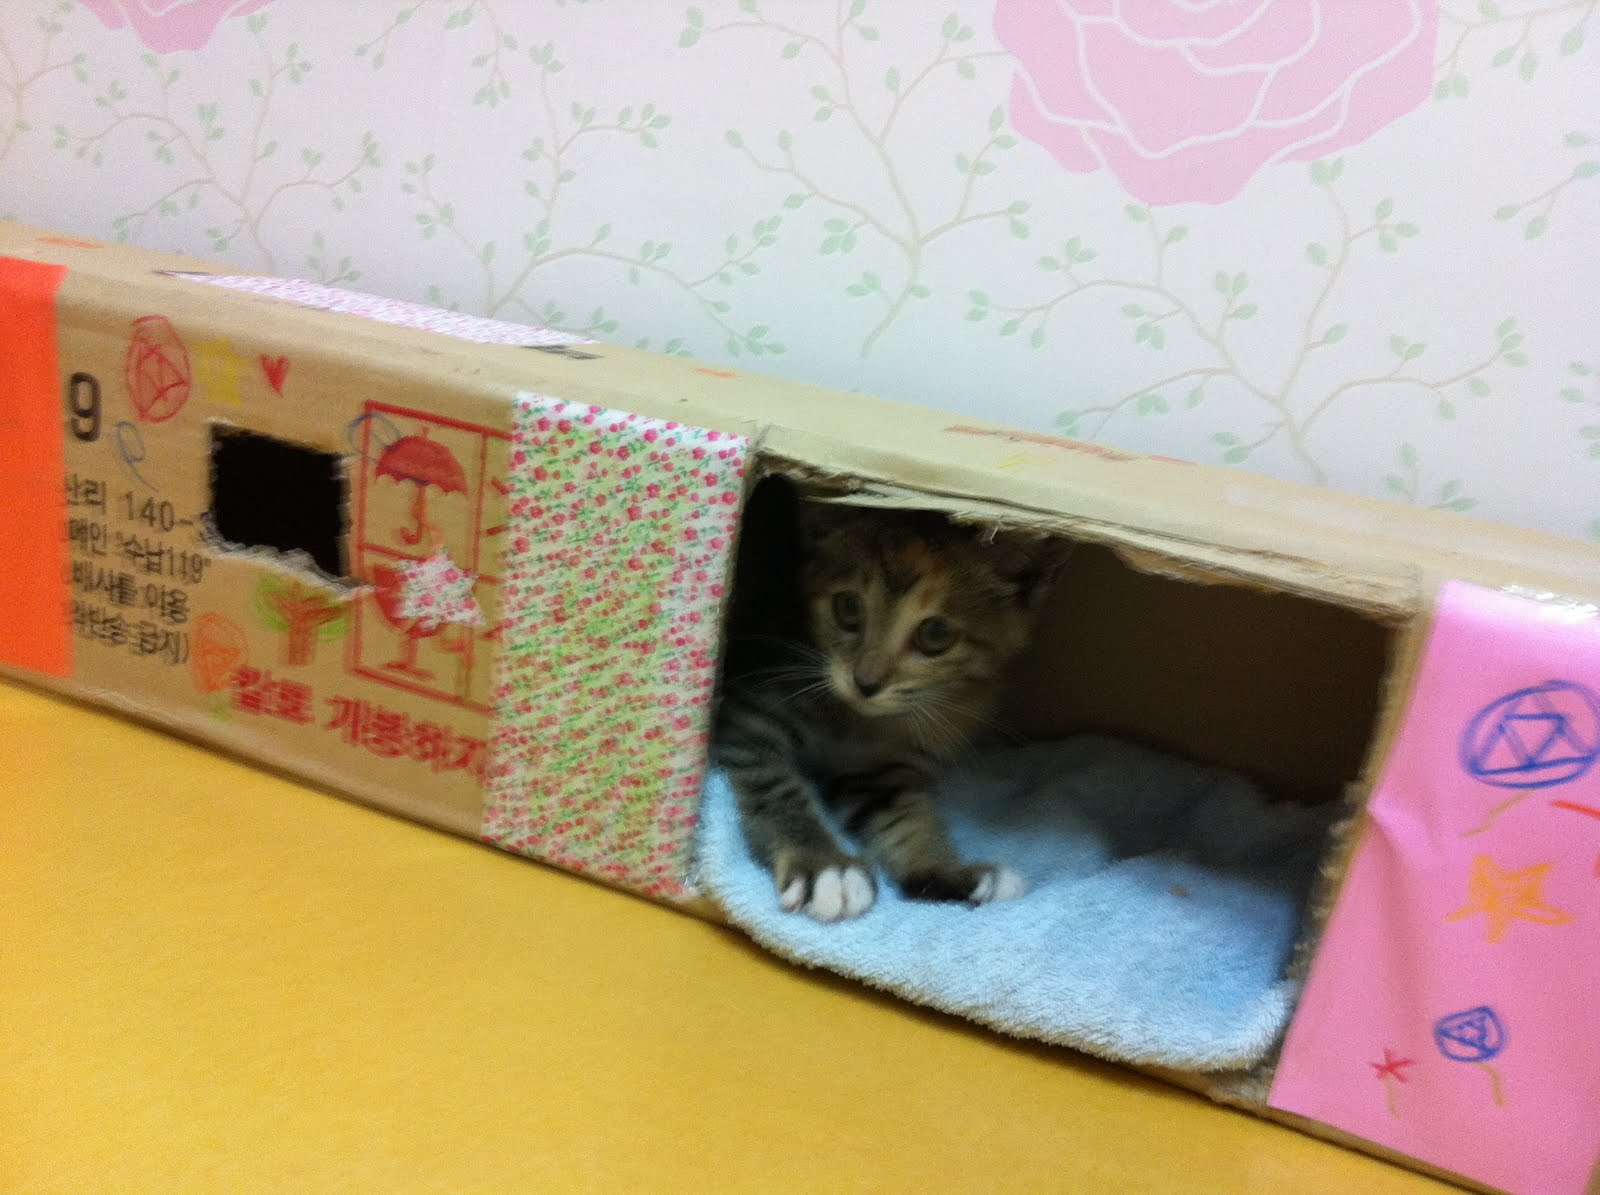 The cat obliged. She ran through the box, jumped out one of the